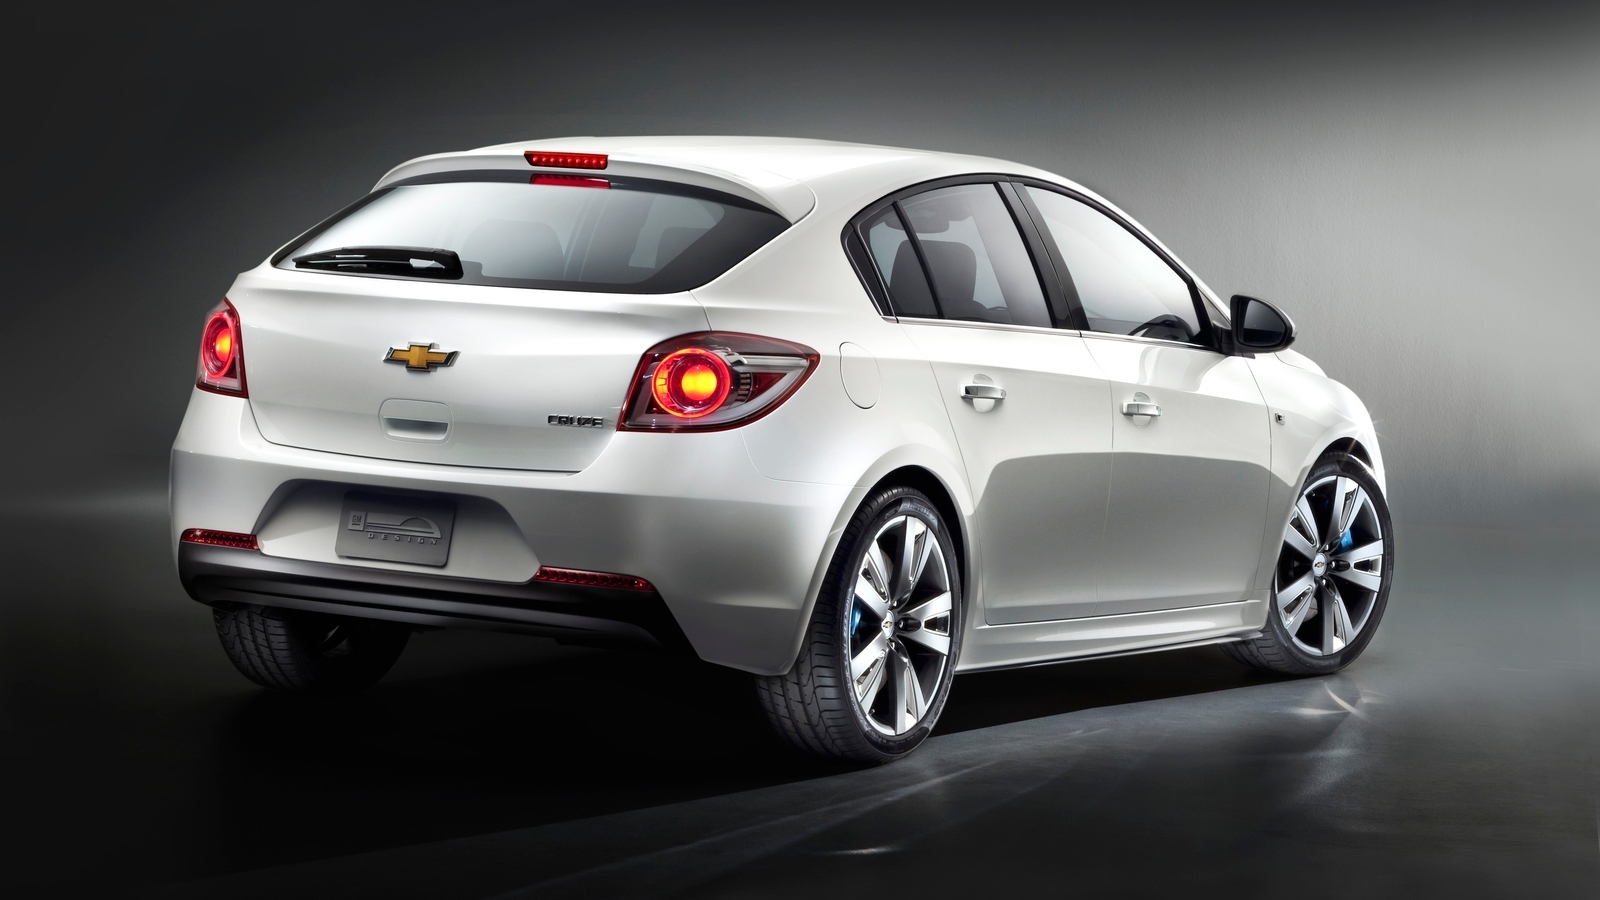 2012 Holden Cruze hatchback